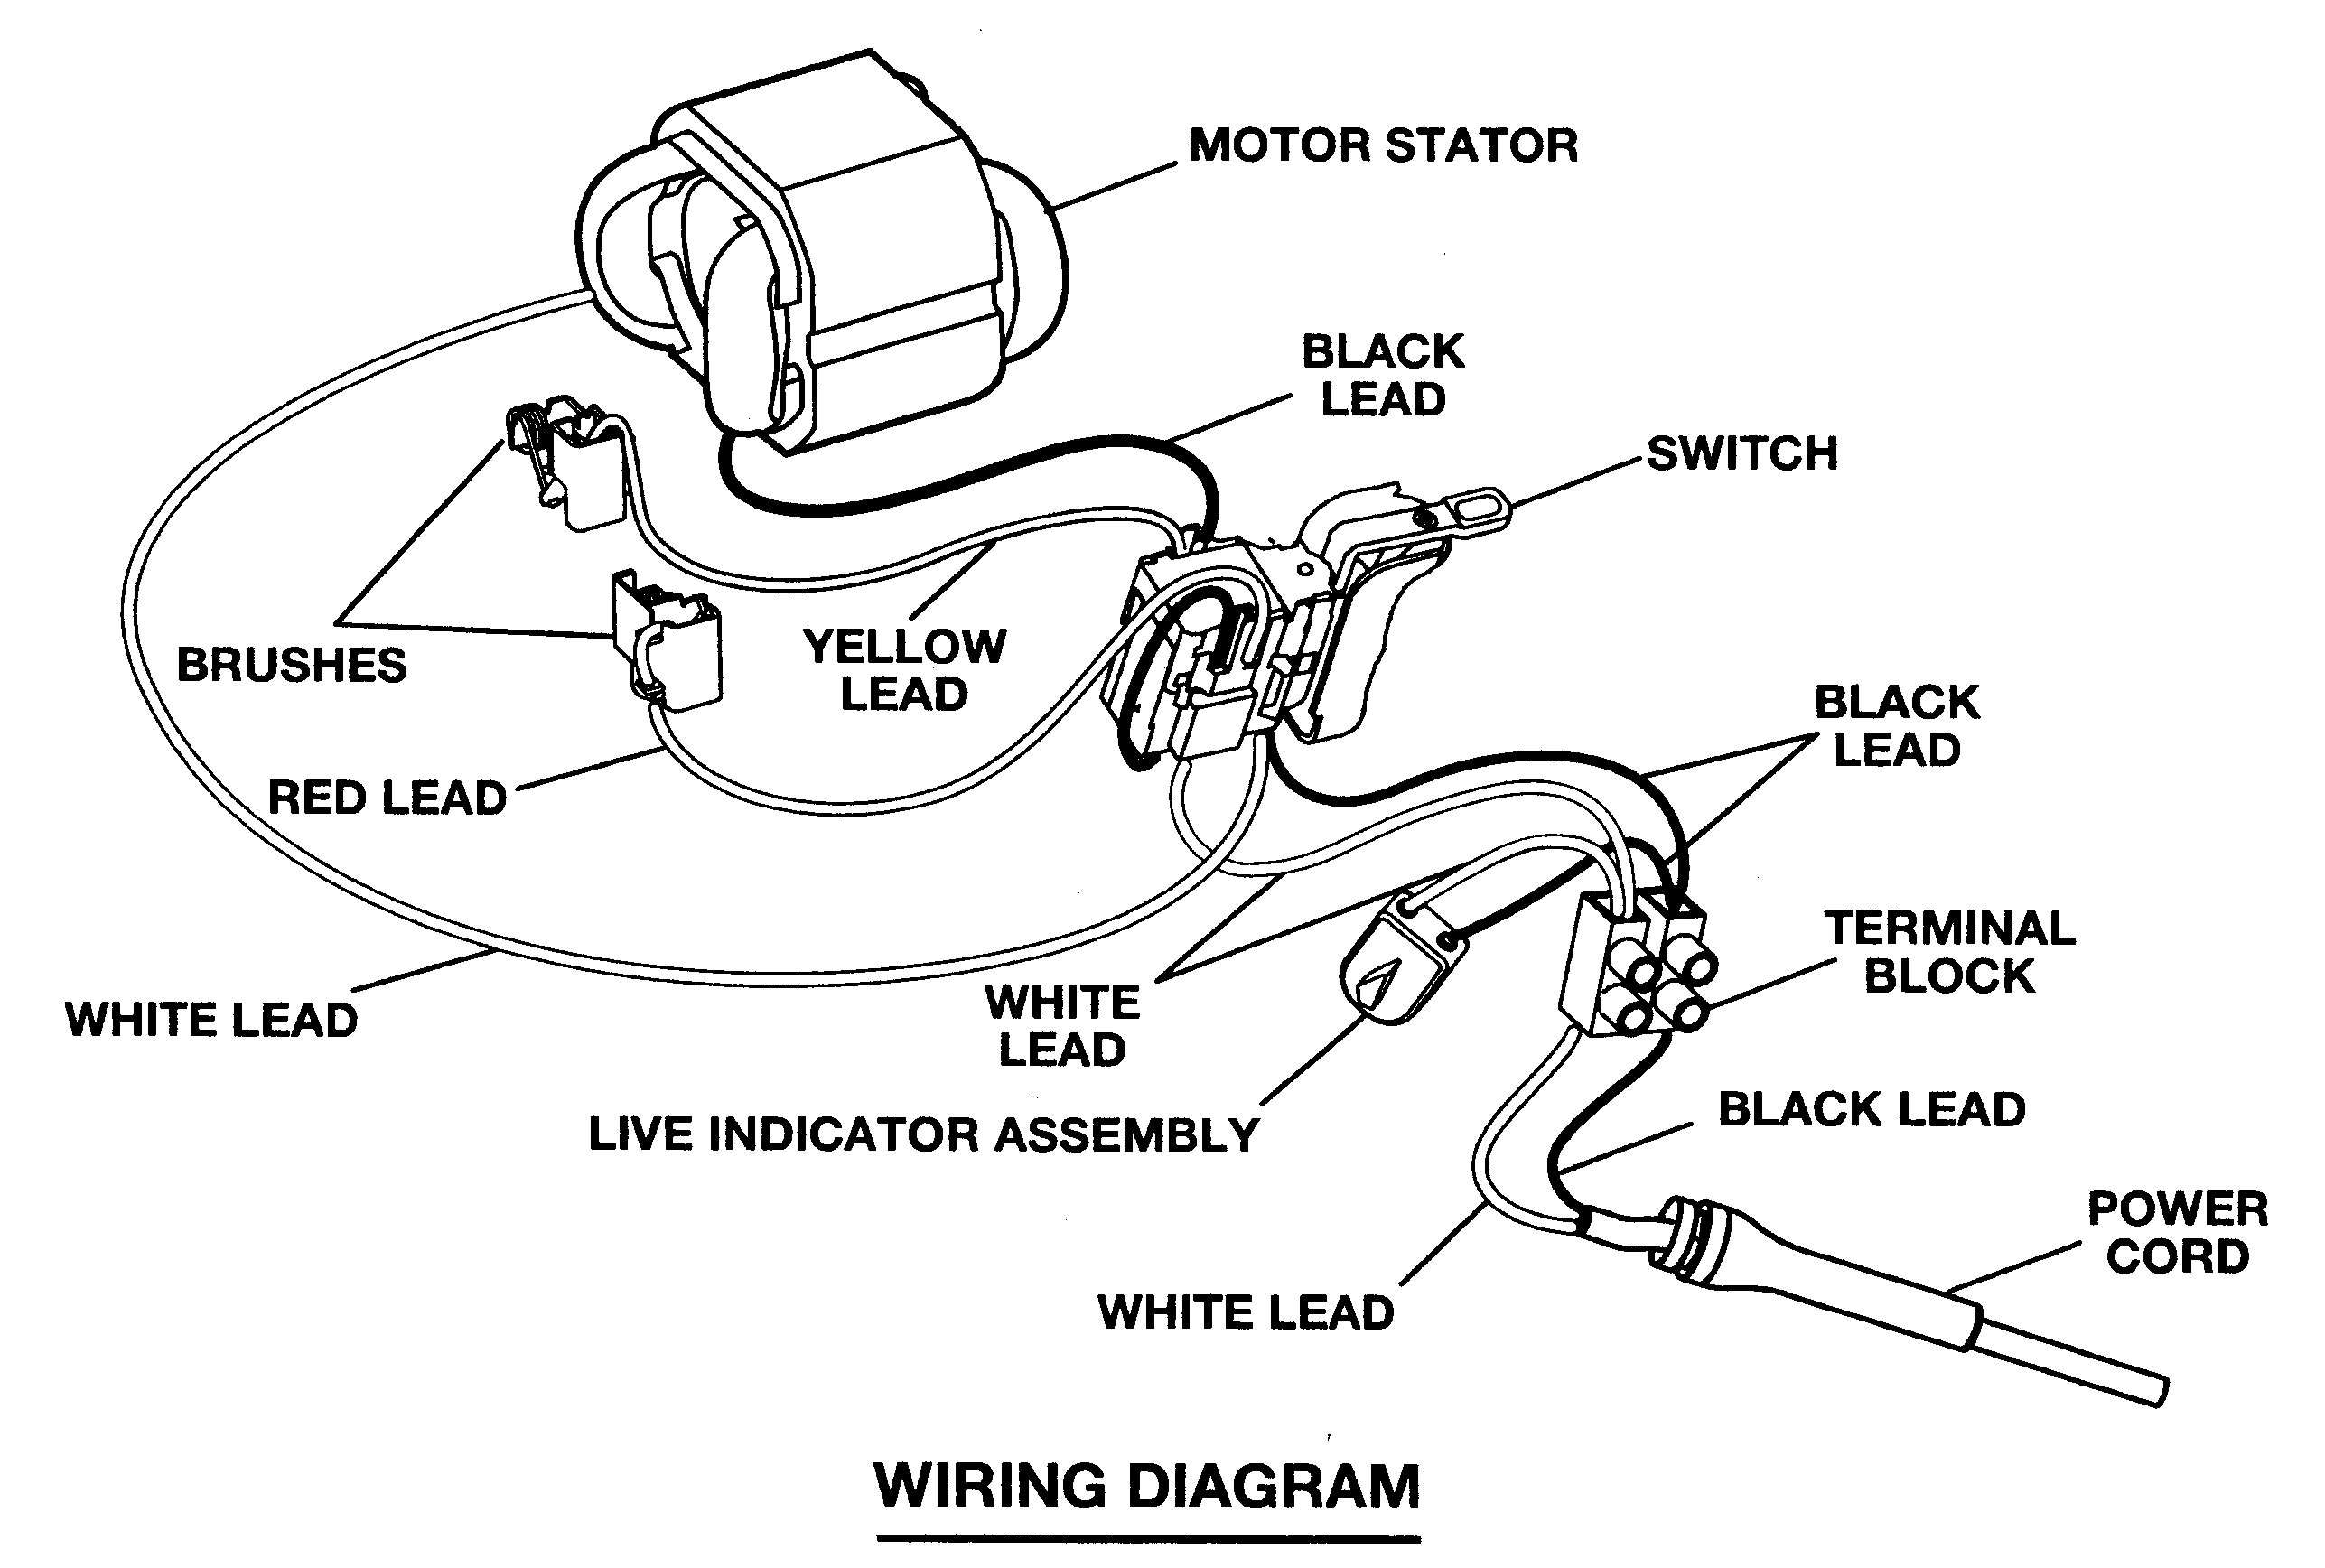 WR_5733] Black And Decker Drill Wiring Diagram Further Wiring Harness Wiring  Download DiagramUnec Hylec Sequ Piot Rect Mohammedshrine Librar Wiring 101